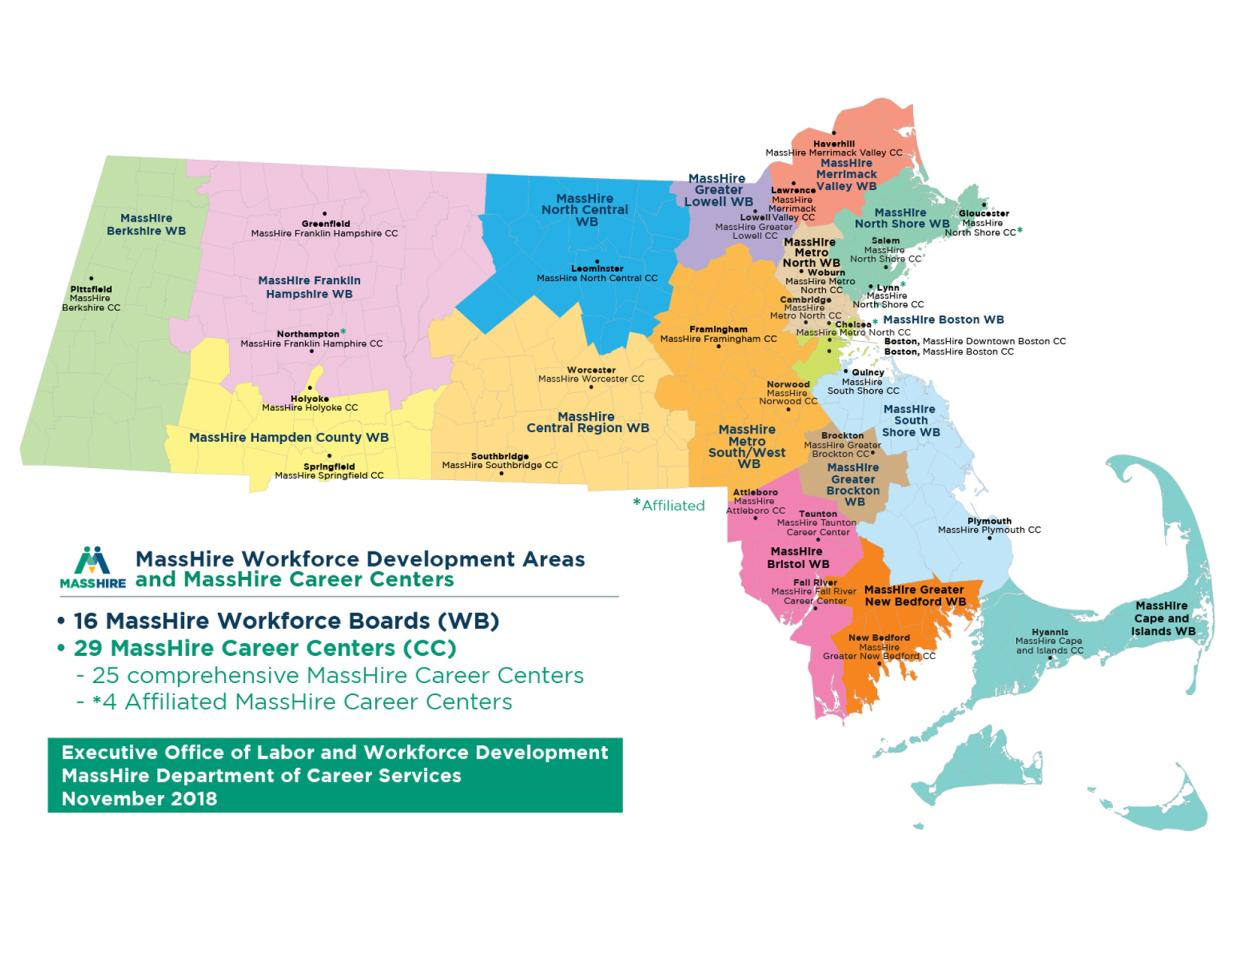 Massachusetts MassHire Workforce Board and MassHire Career Centers